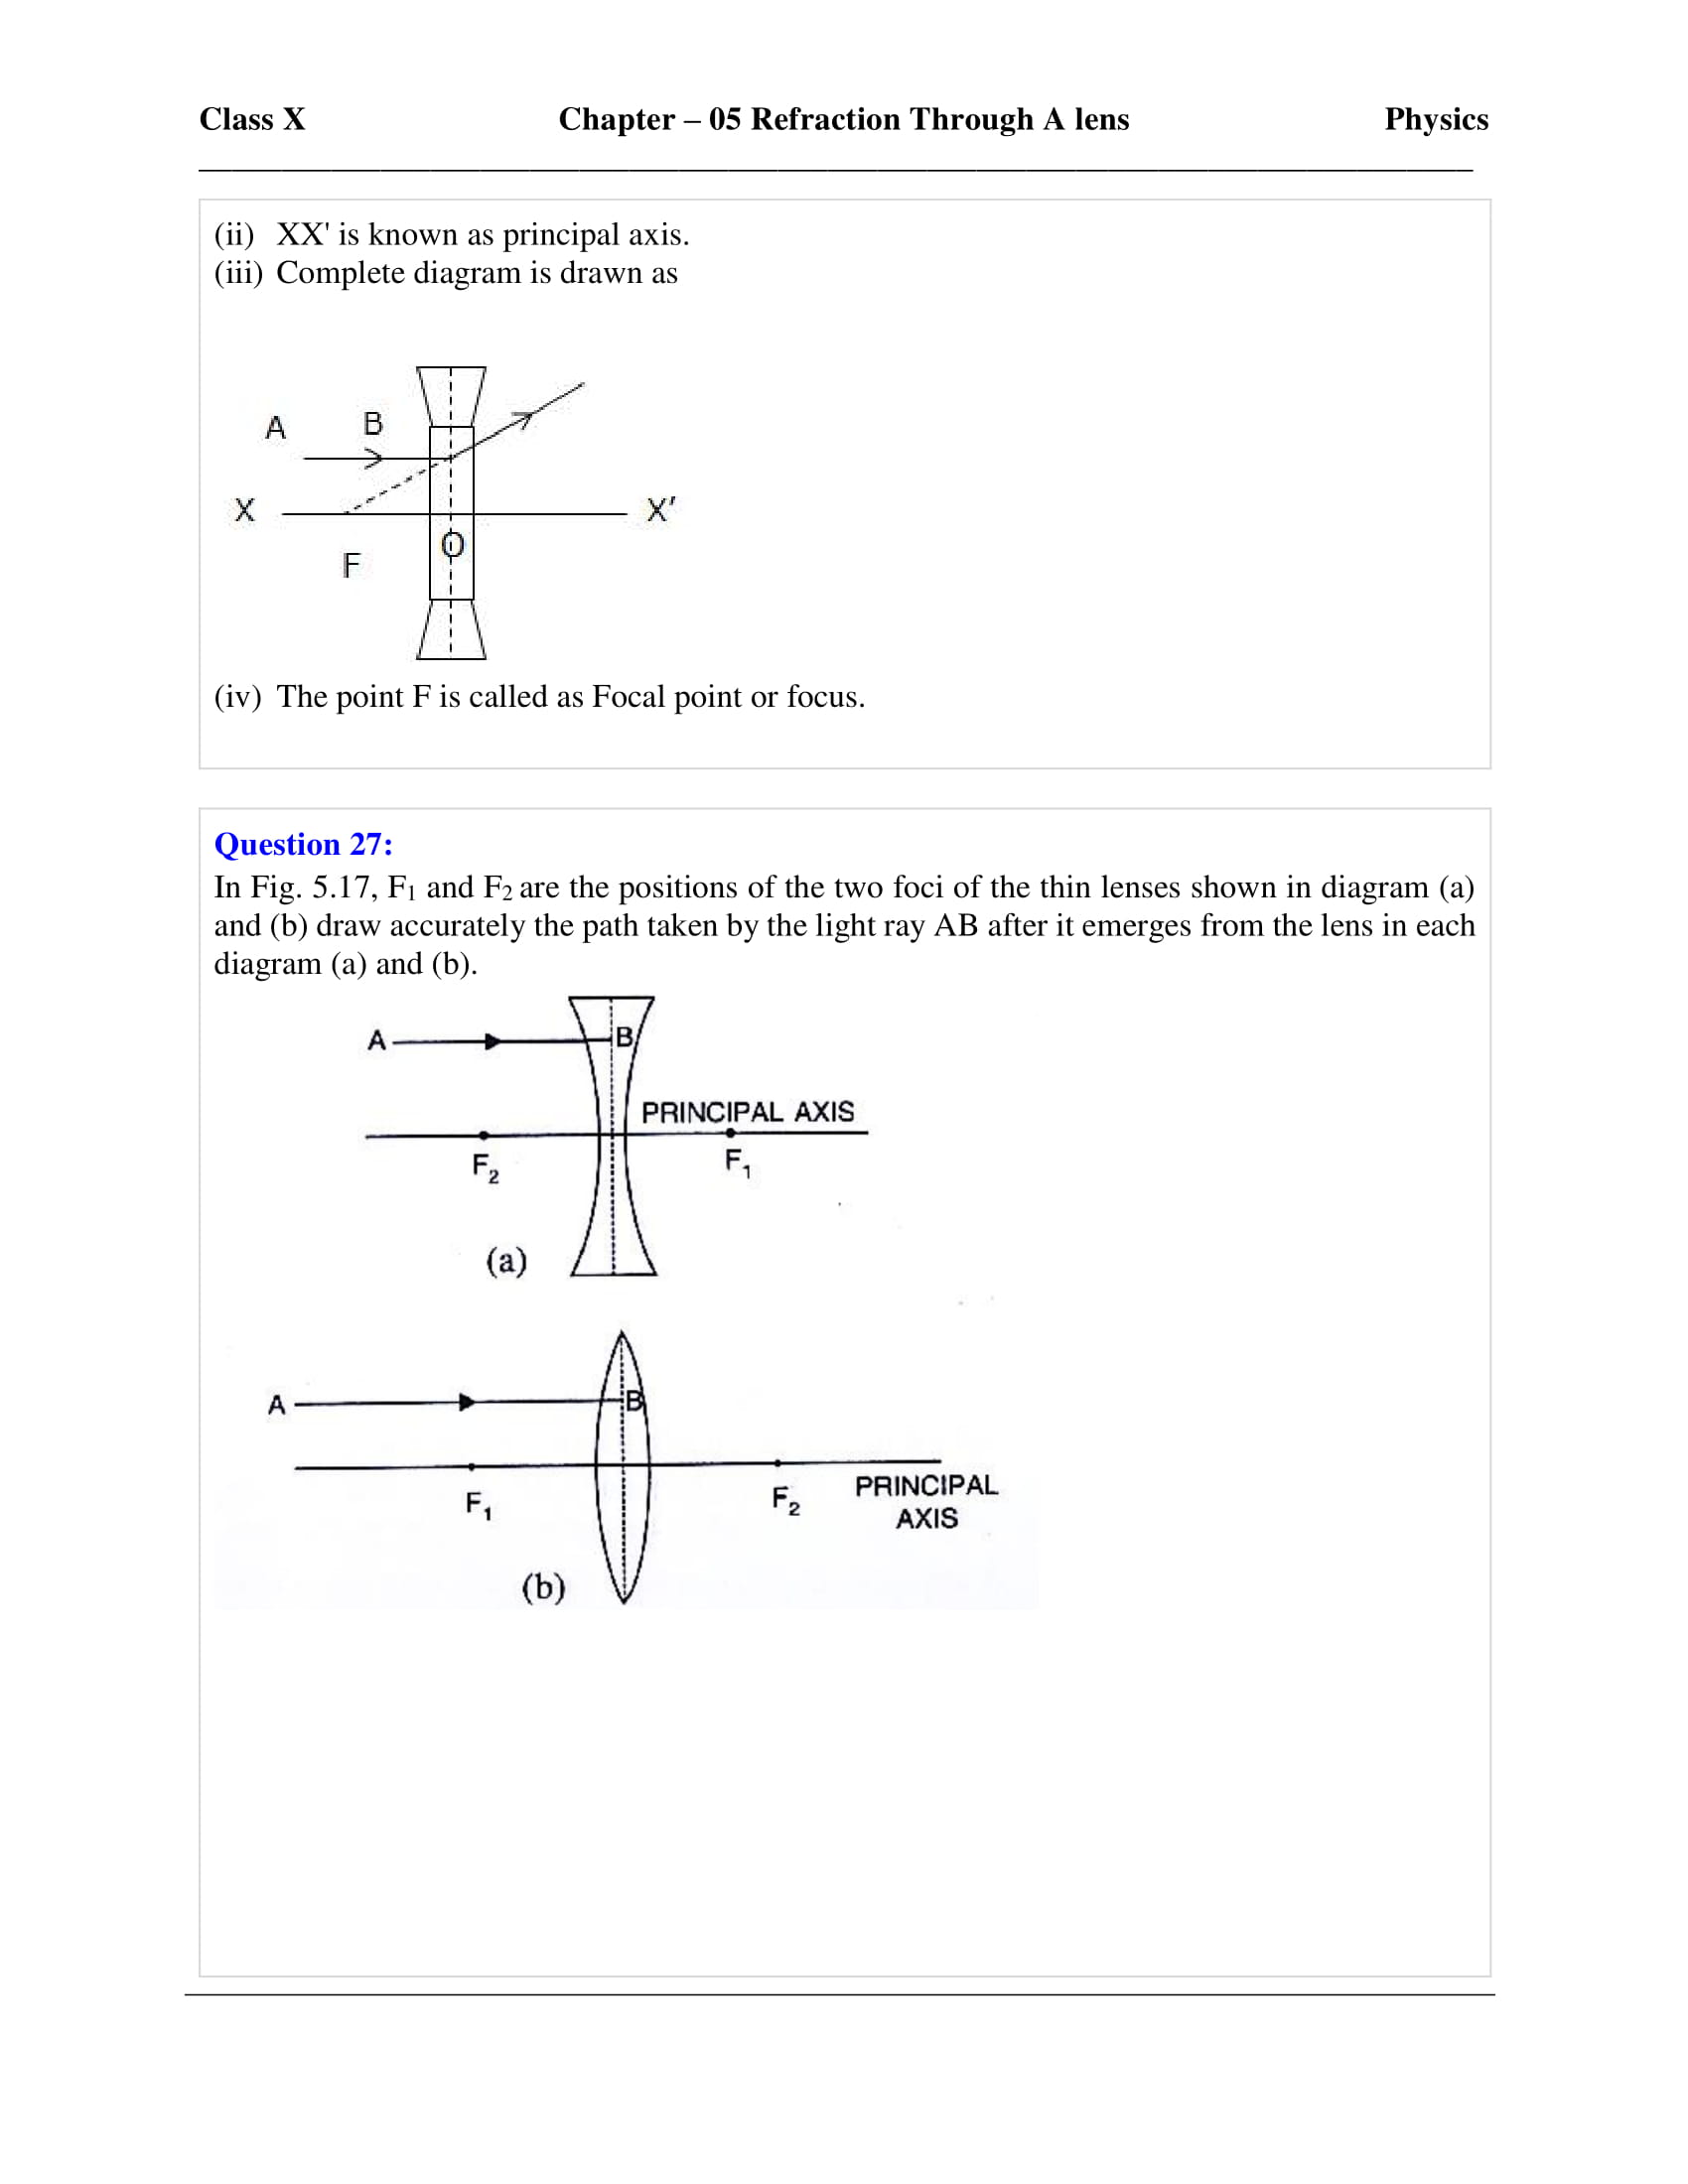 icse-selina-physics-solutions-class-10-chapter-5-refraction-through-a-lens-11